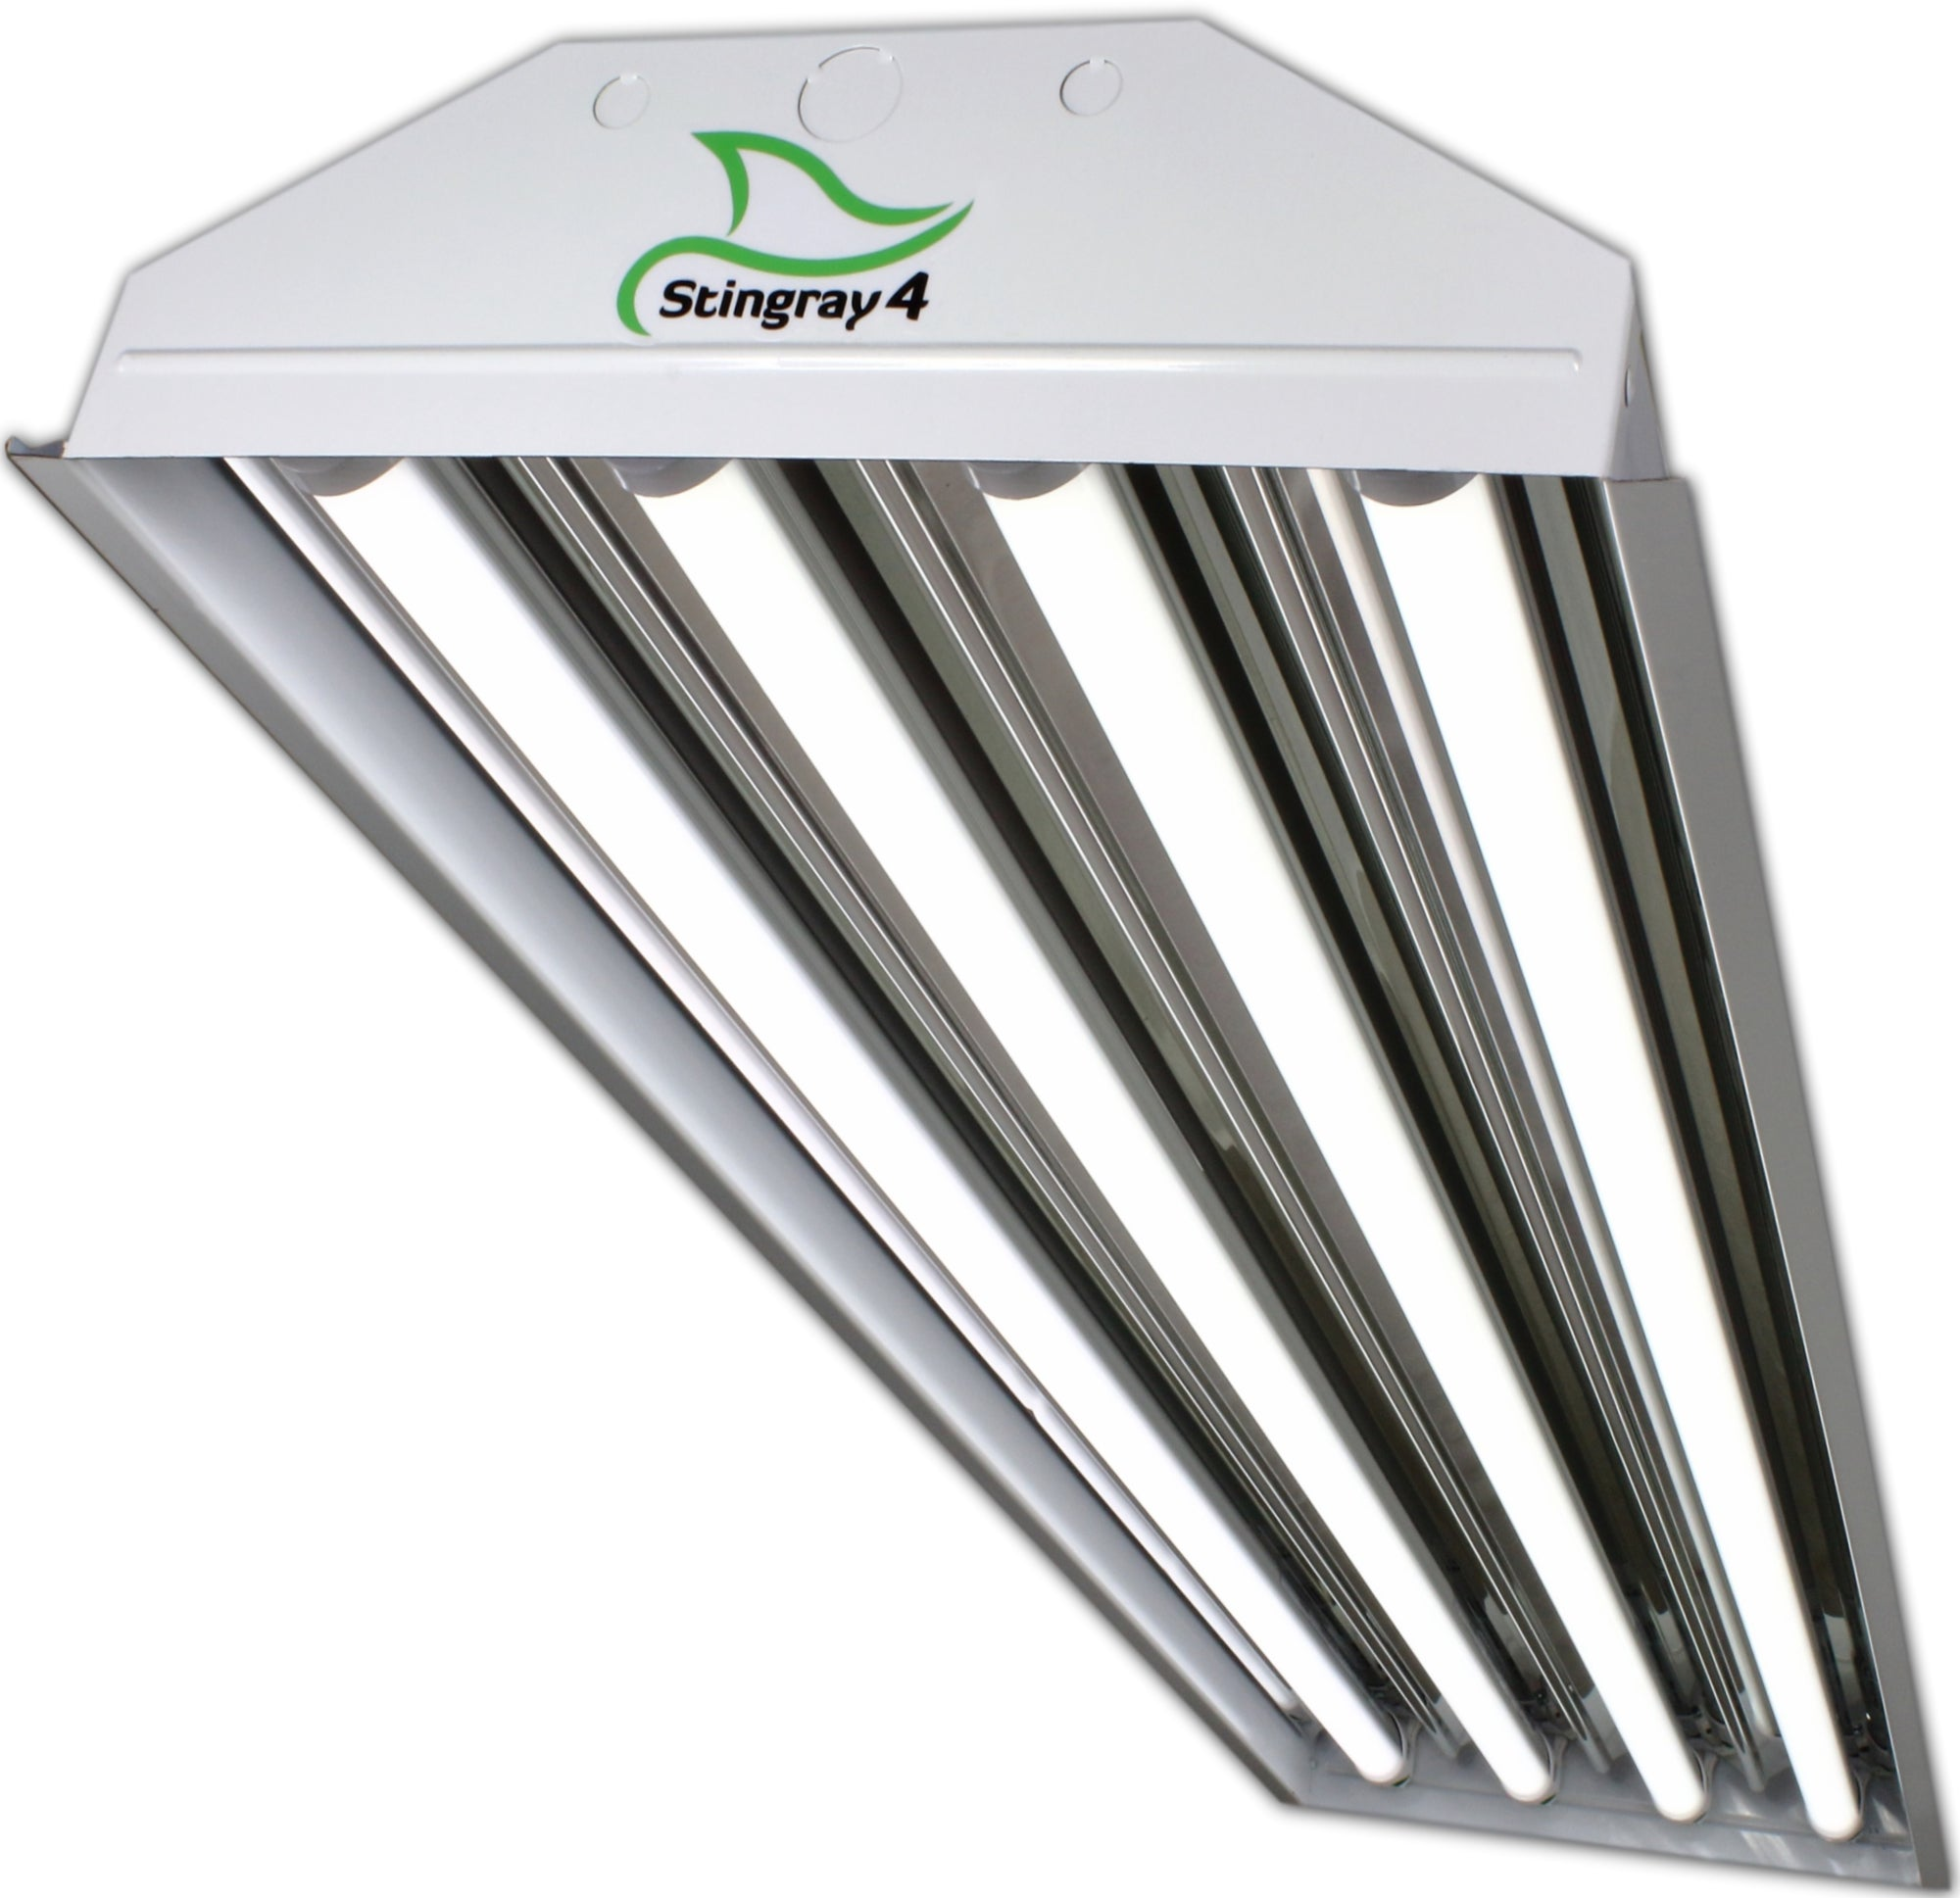 LED 4 Lamp T8 STINGRAY 4 Highbay Fixture 72 Watts